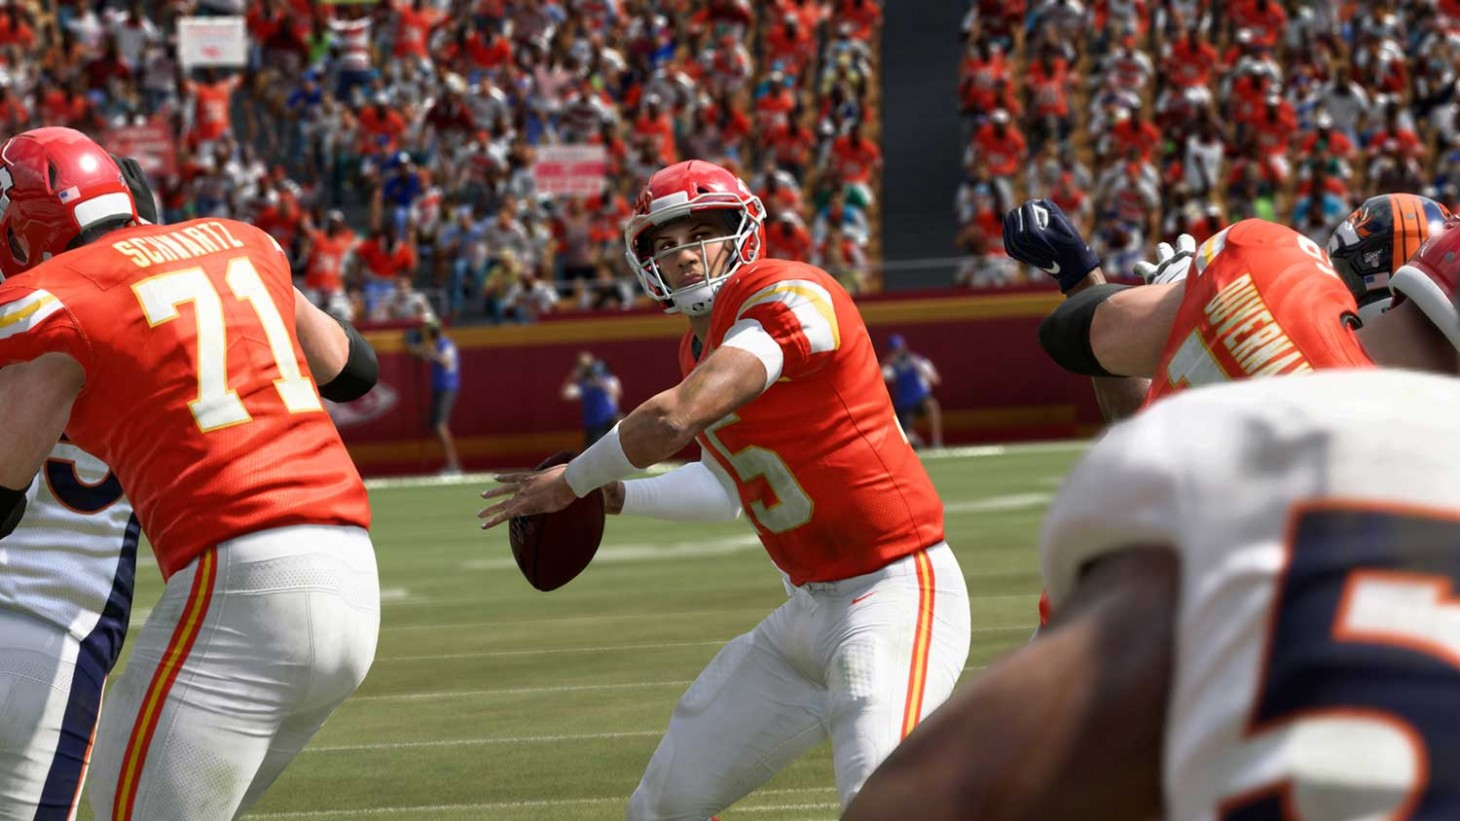 Madden NFL 20's New Ability System Spotlights The League's